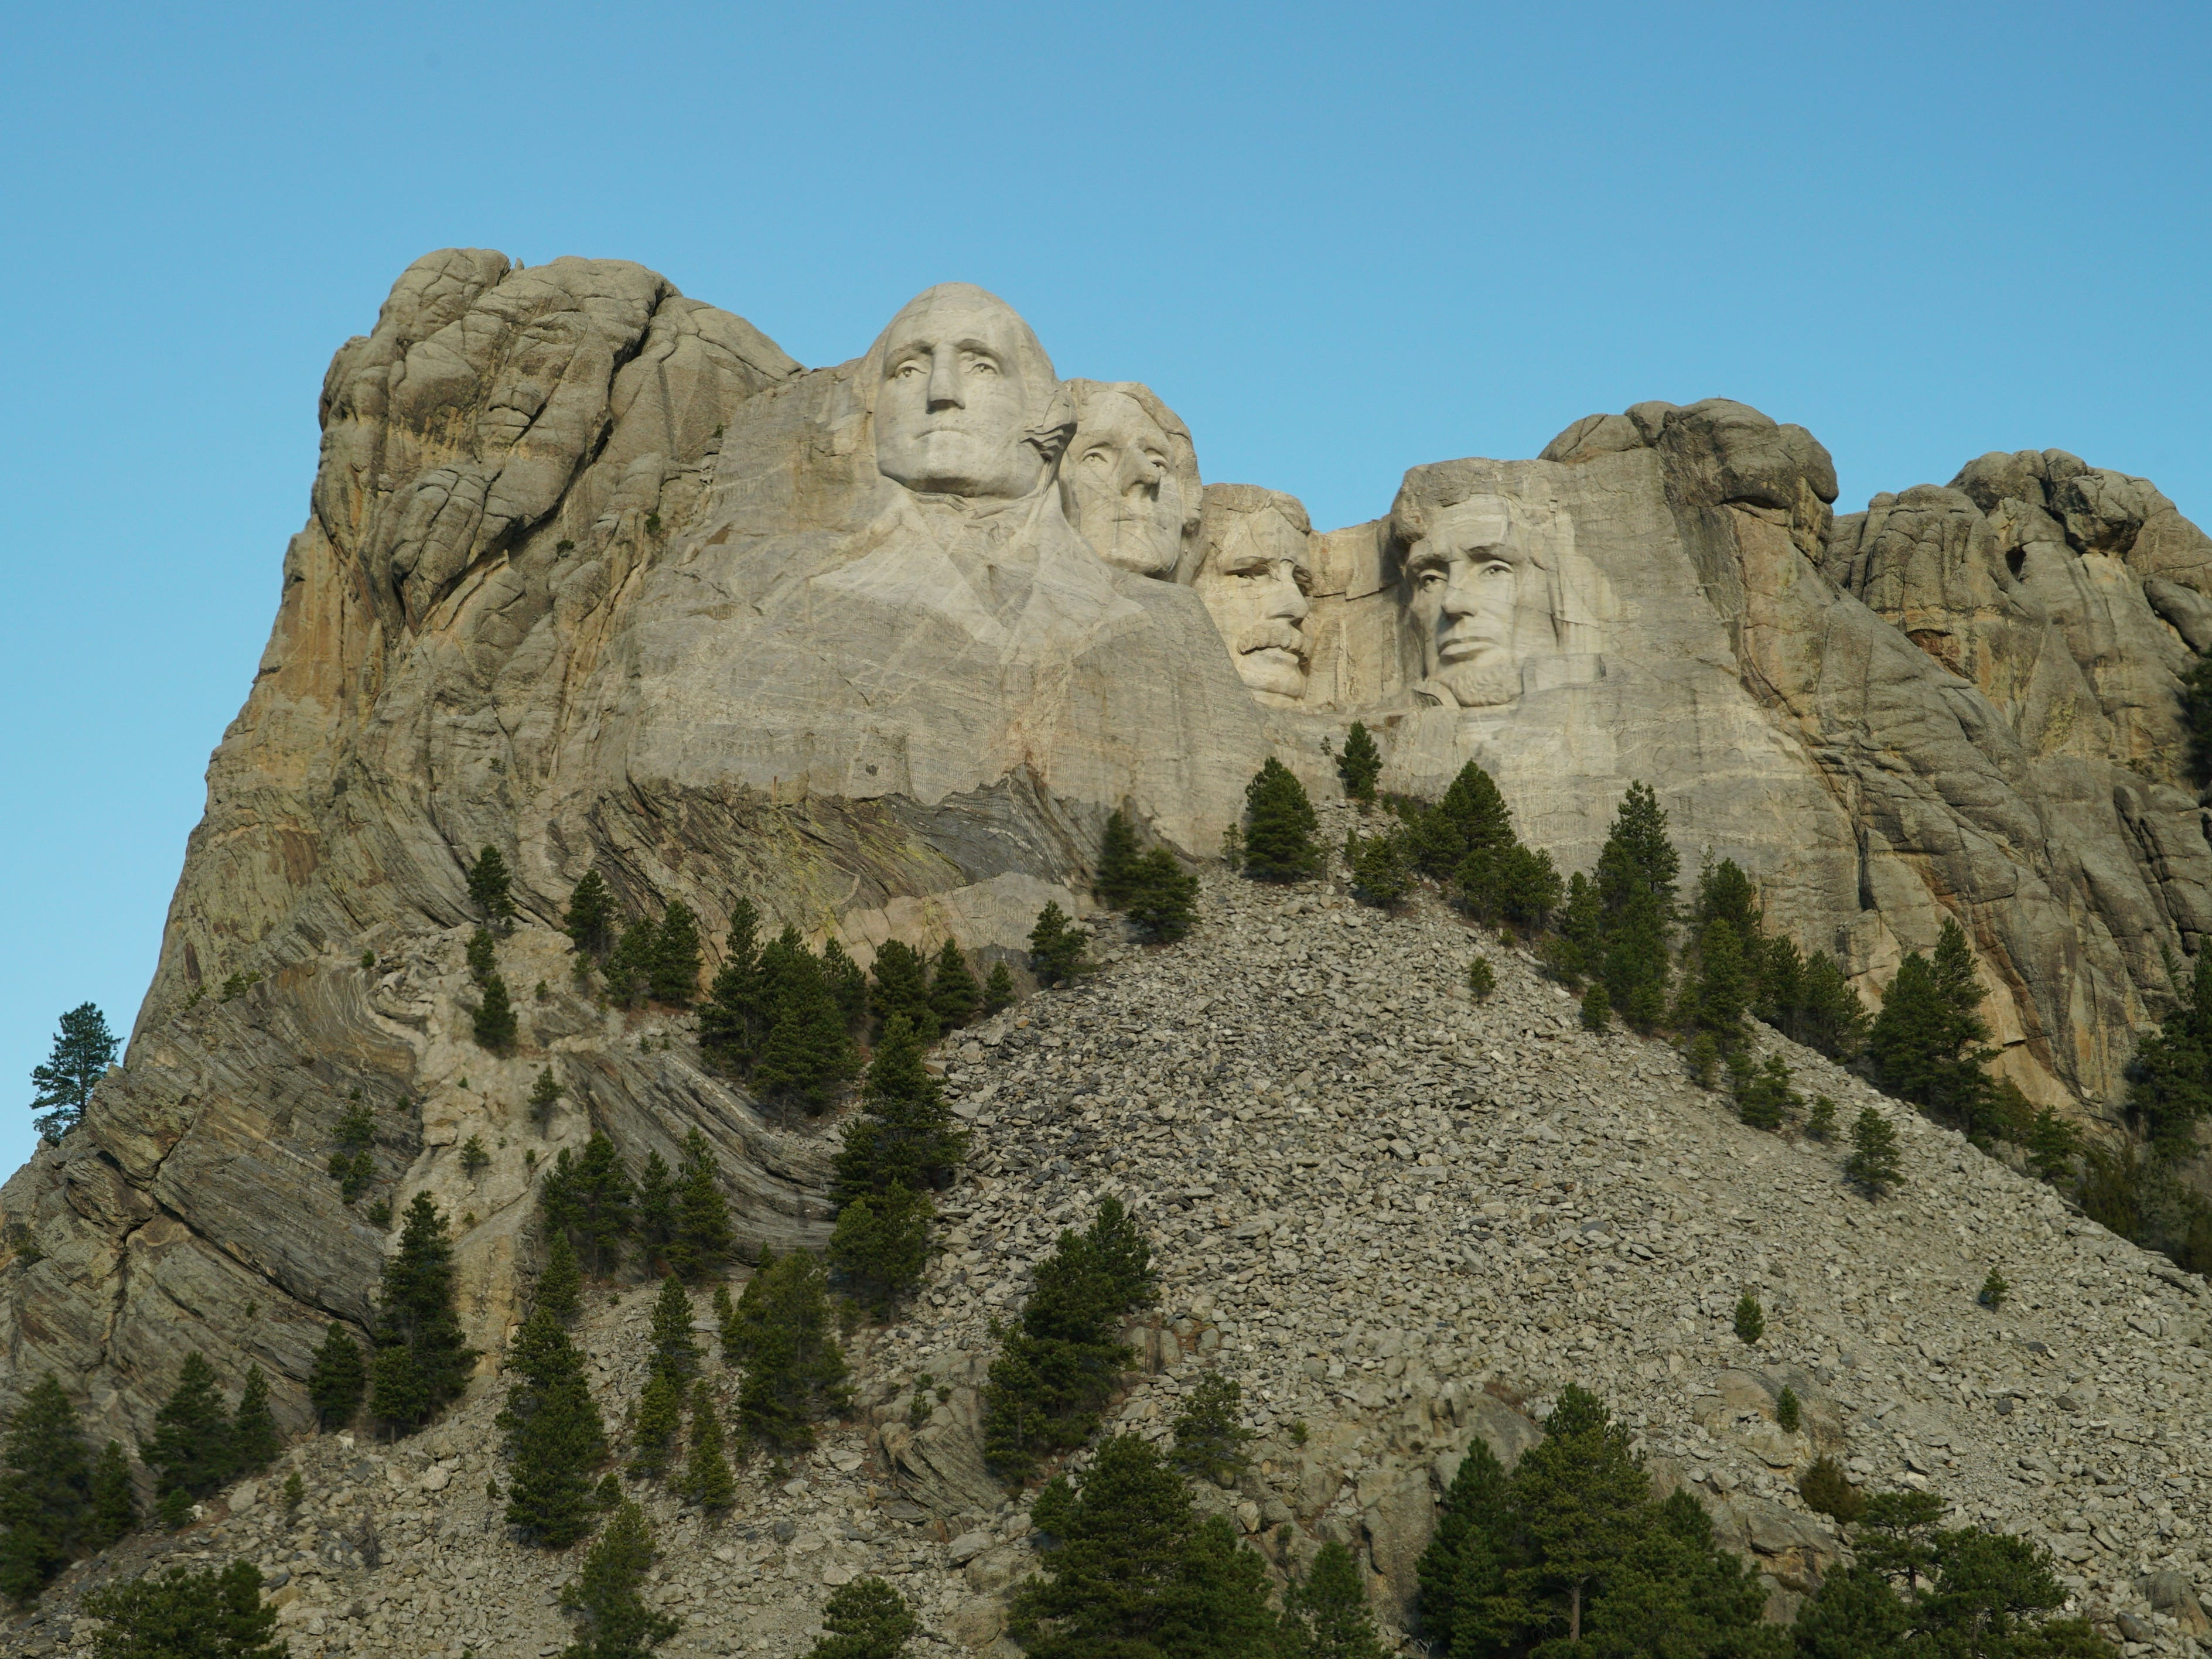 The 450,000 tons of rock blown or chiseled off the mountain still lies below Mount Rushmore.